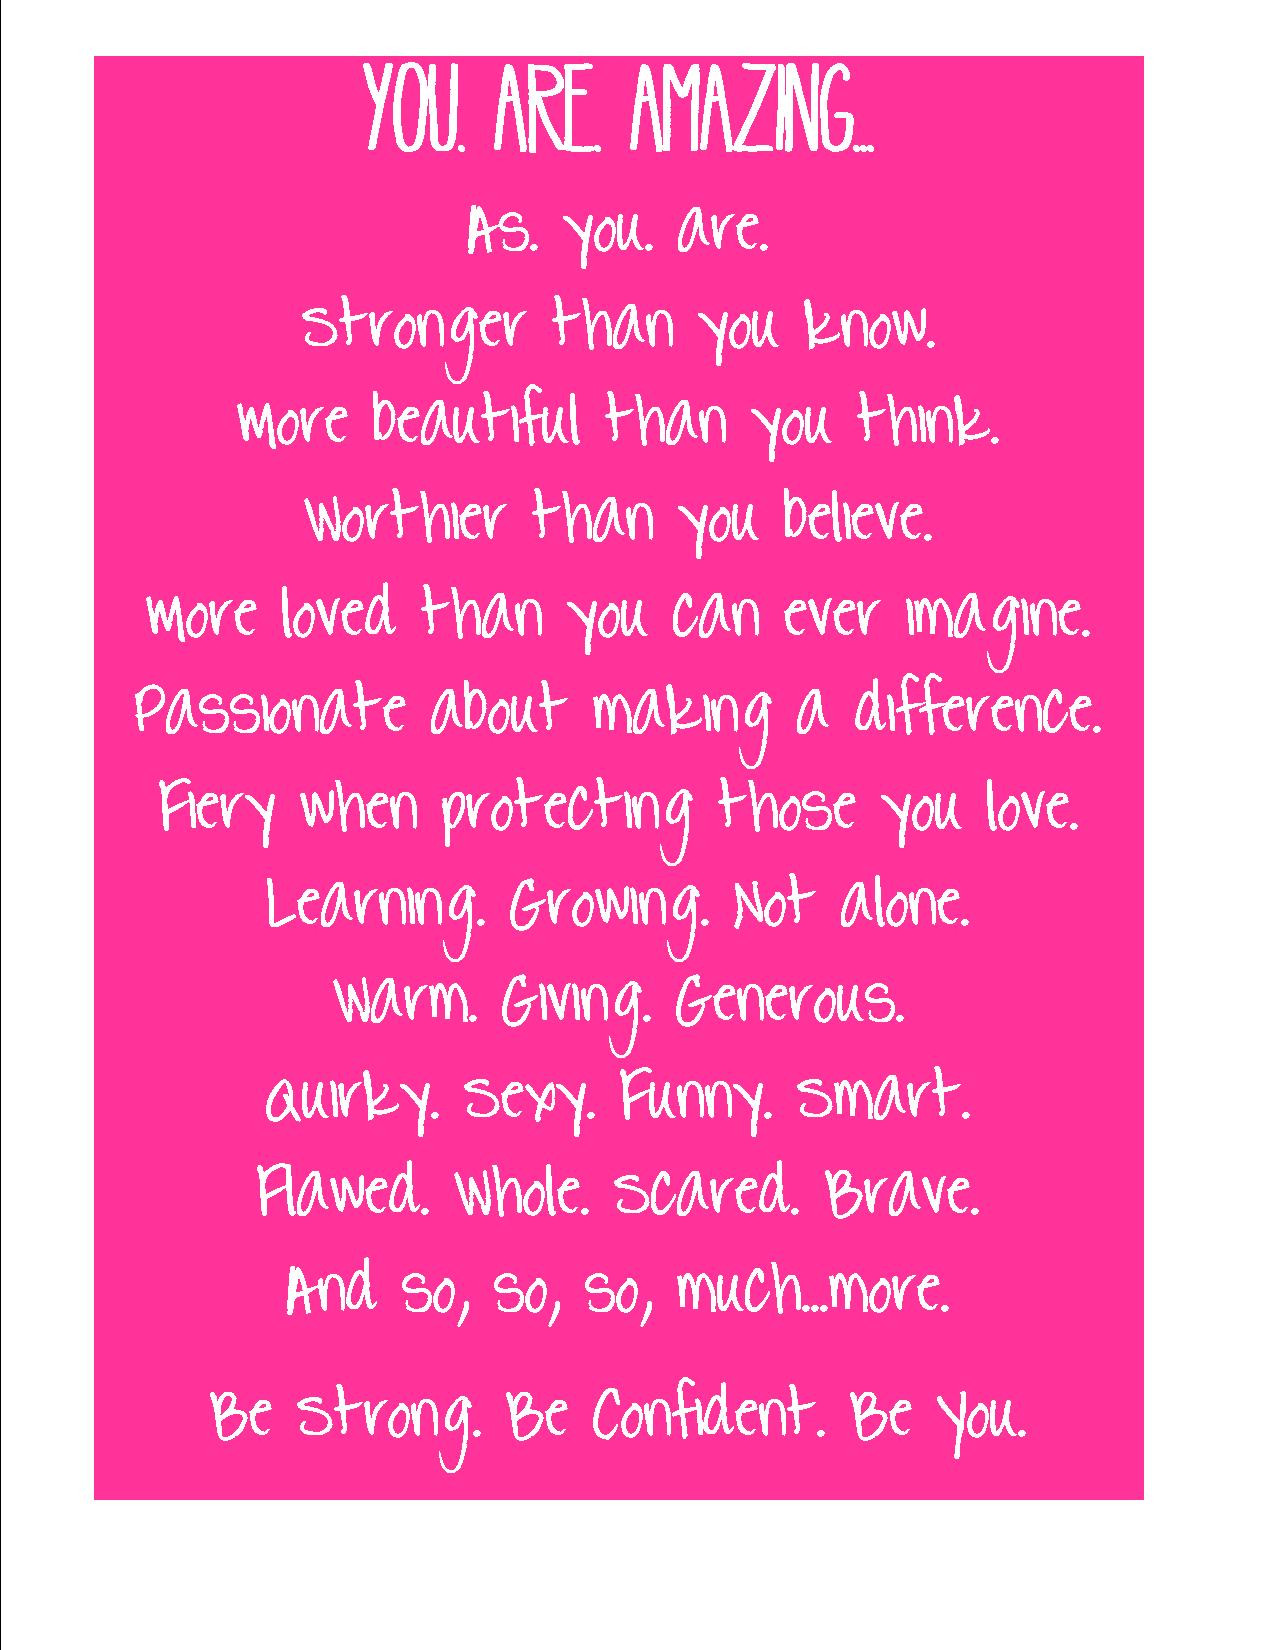 Inspirational Quotes For Women  Inspirational Birthday Quotes For Women QuotesGram